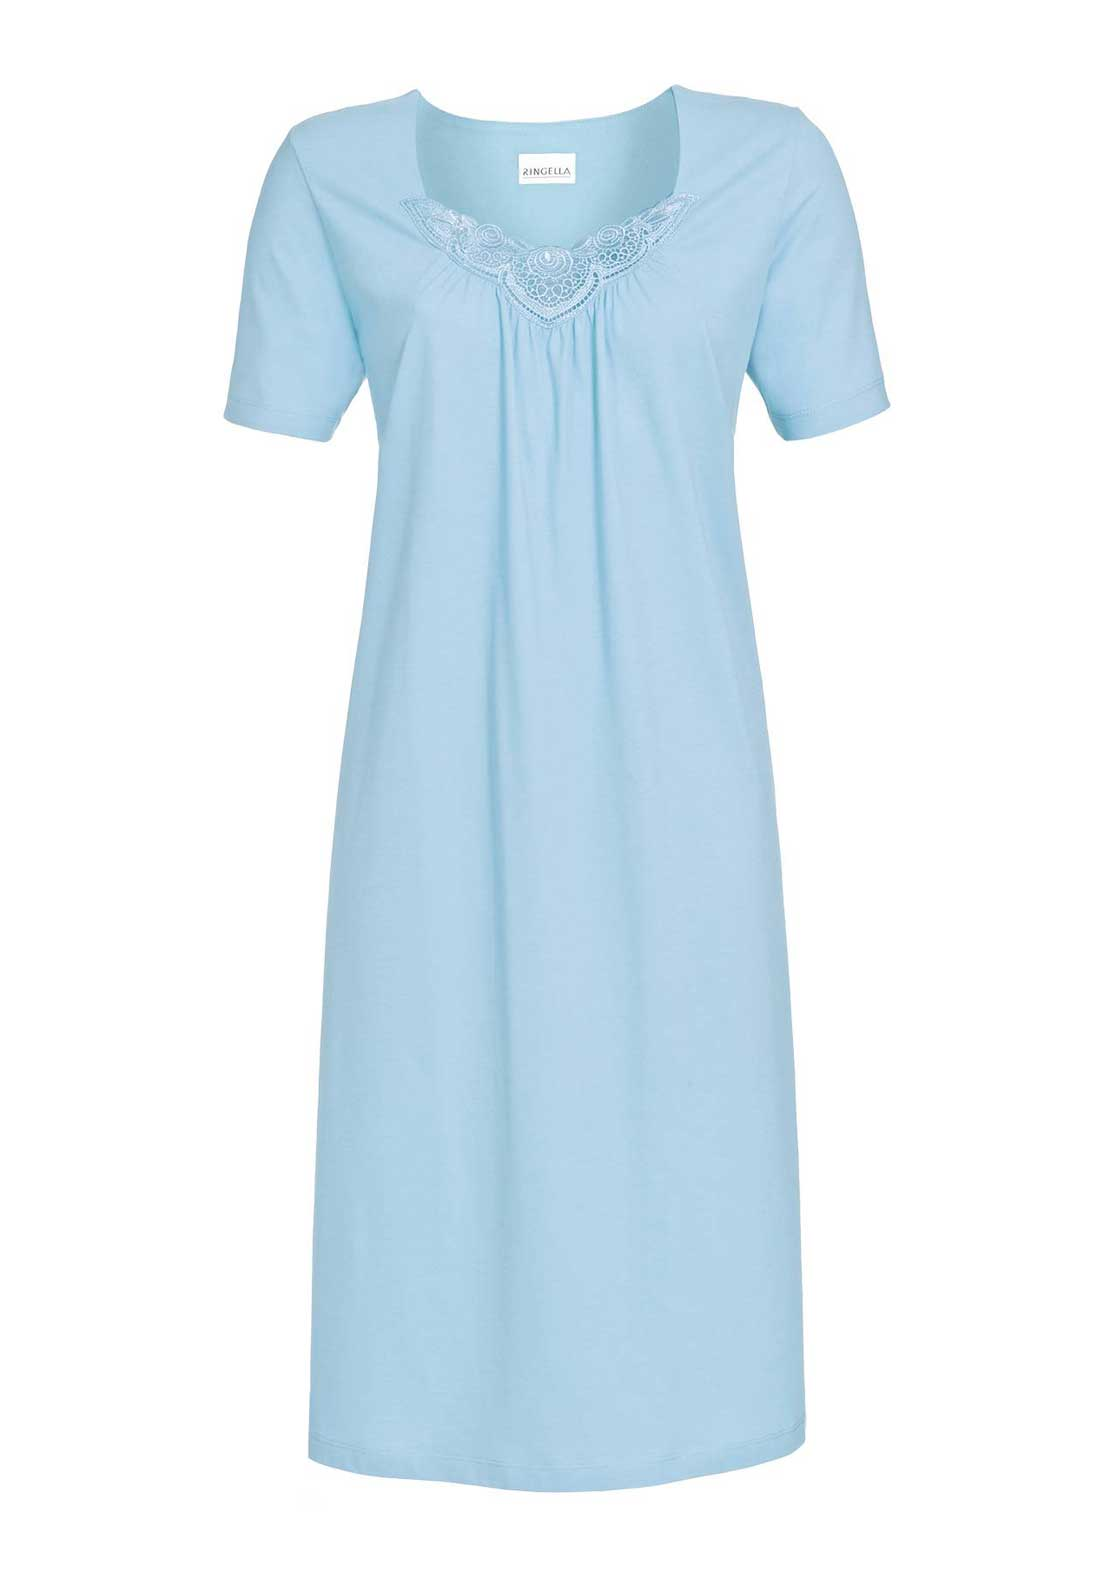 Ringella Lace Trim Short Sleeve Cotton Nightdress, Blue